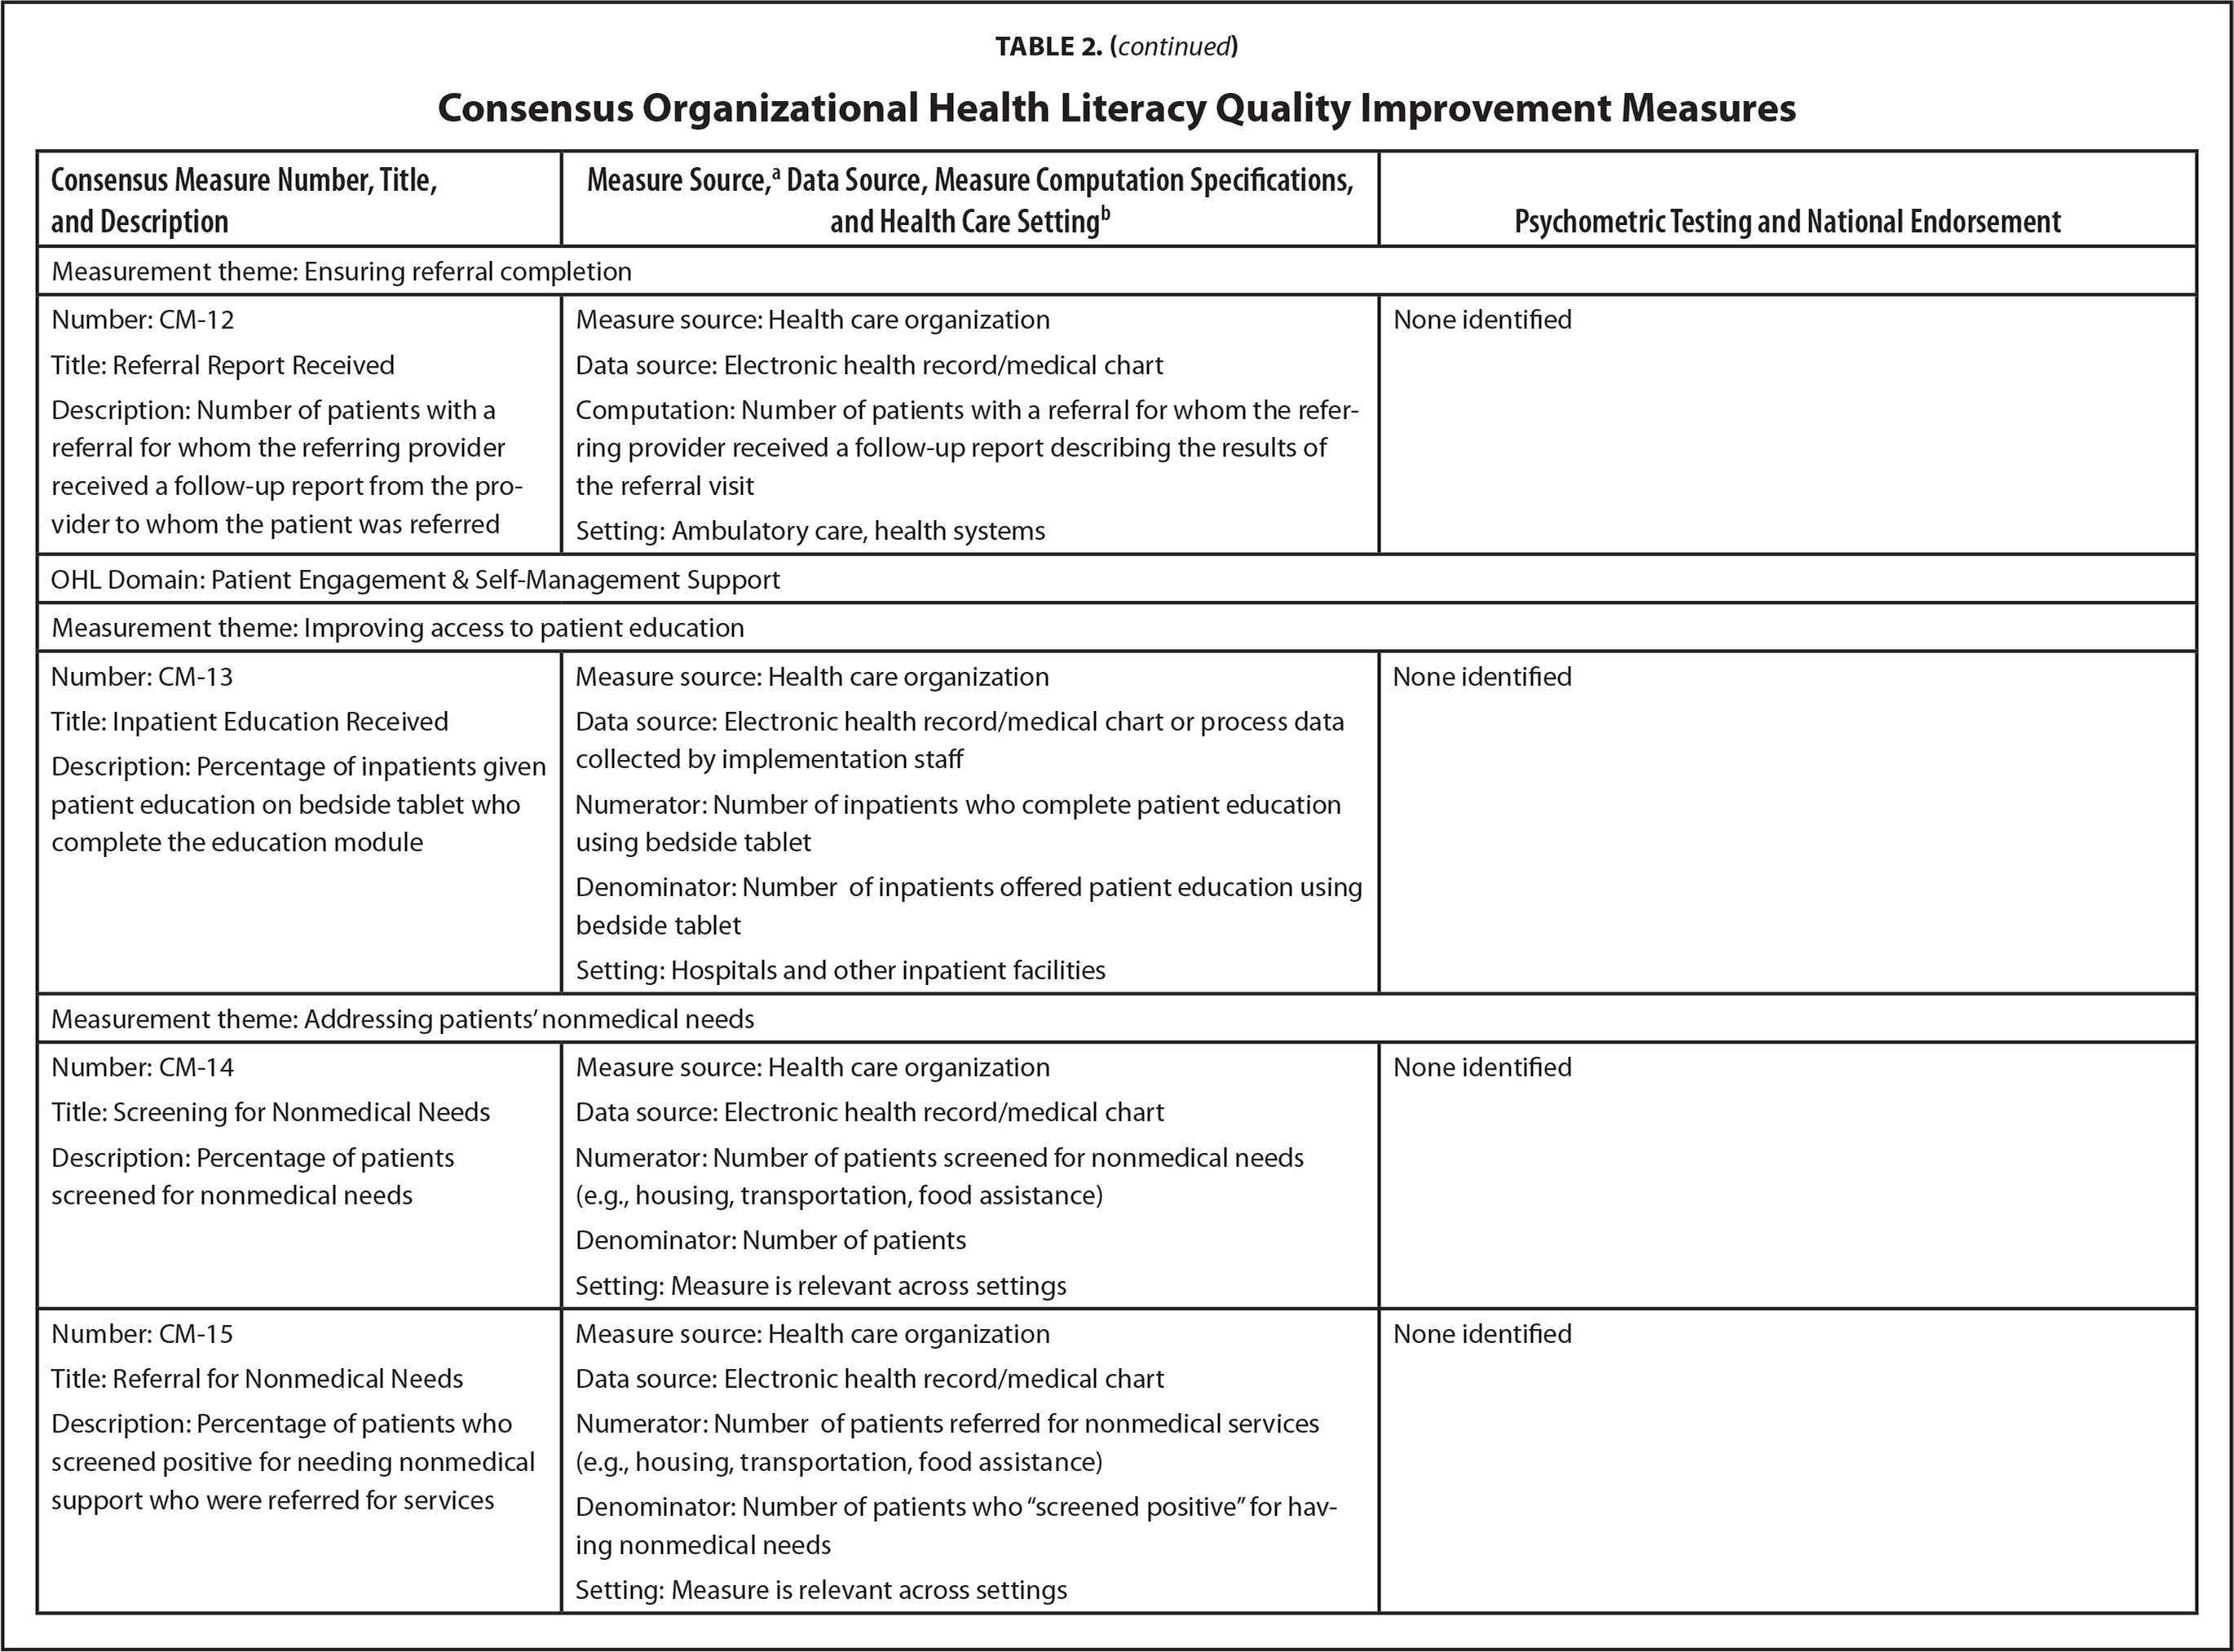 Consensus Organizational Health Literacy Quality Improvement Measures